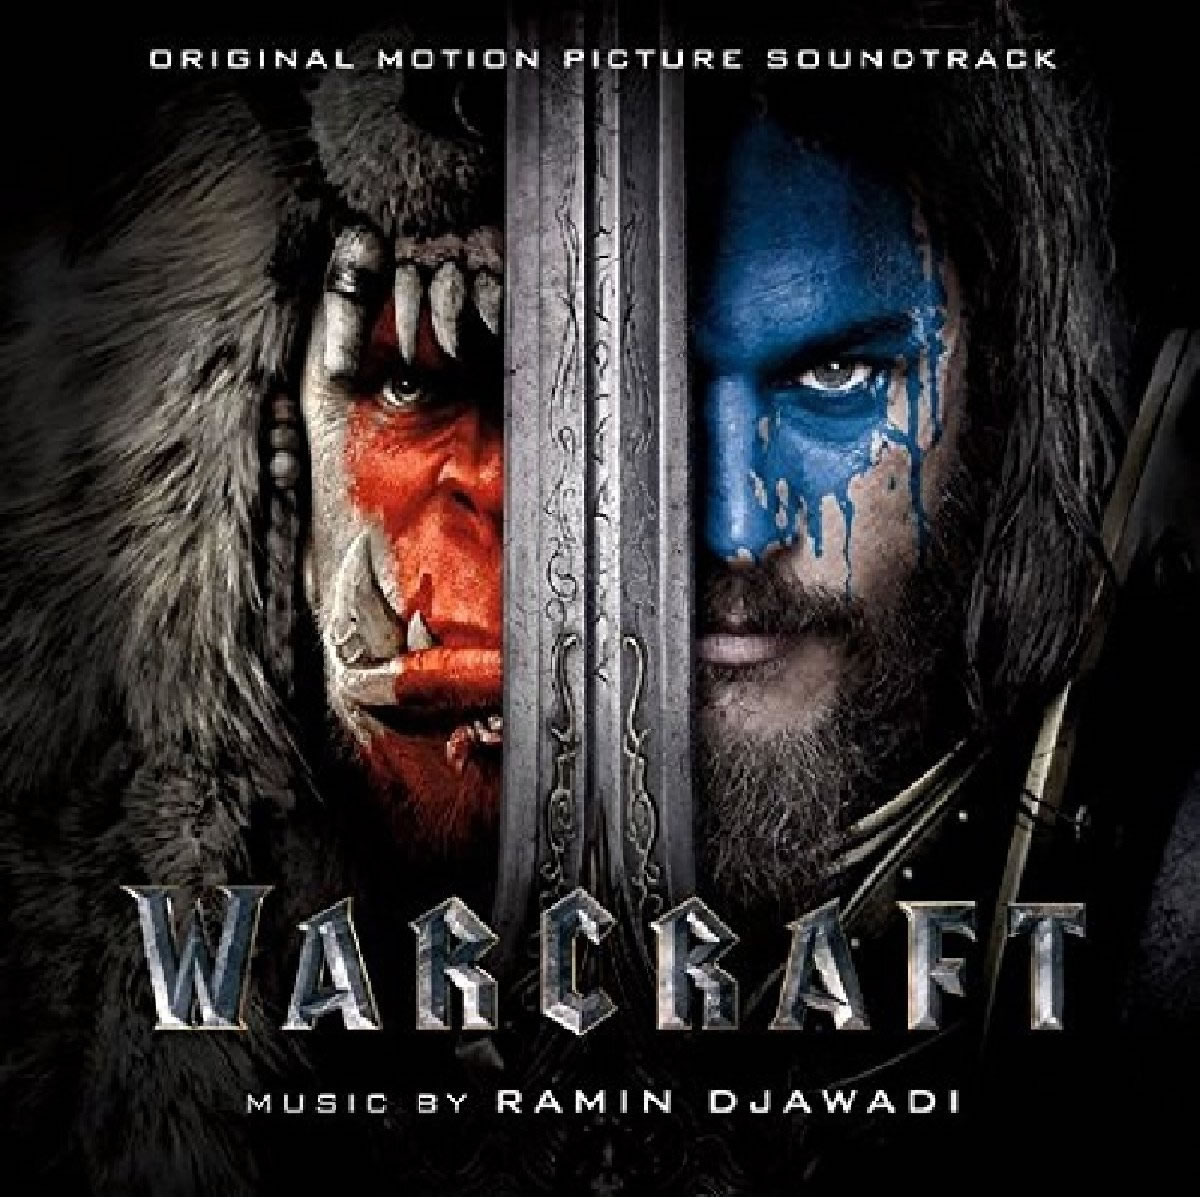 WARCRAFT - ORIGINAL MOTION PICTURE SOUNDTRACK (AUDIO CD)